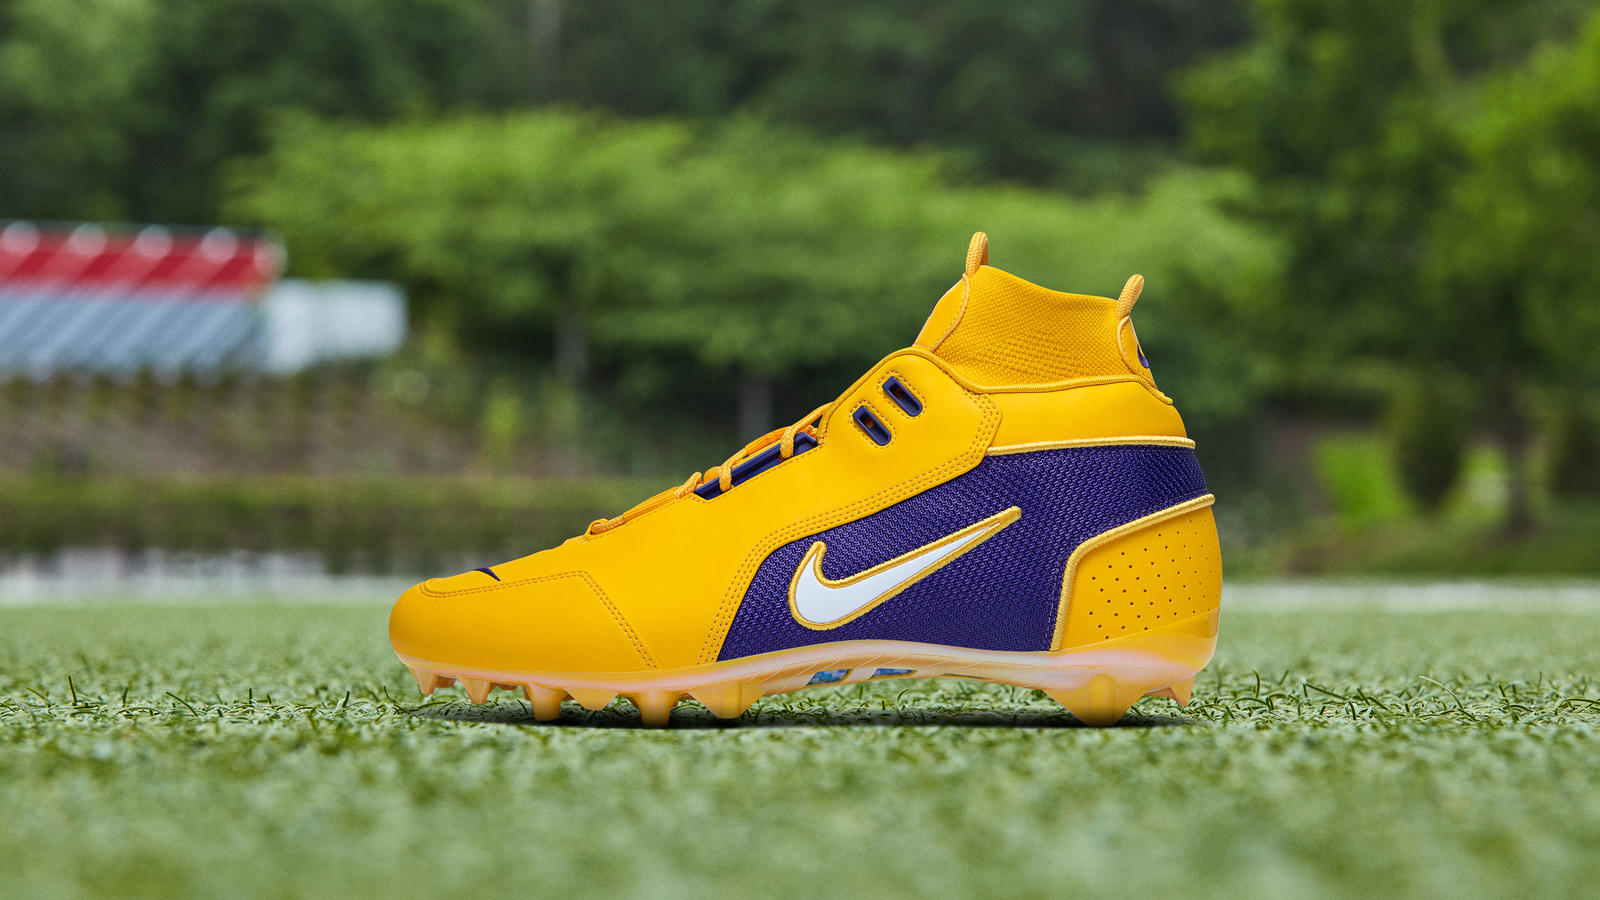 Nike Odell Beckham Jr. Pregame Cleats 2019 Season Week 15 0